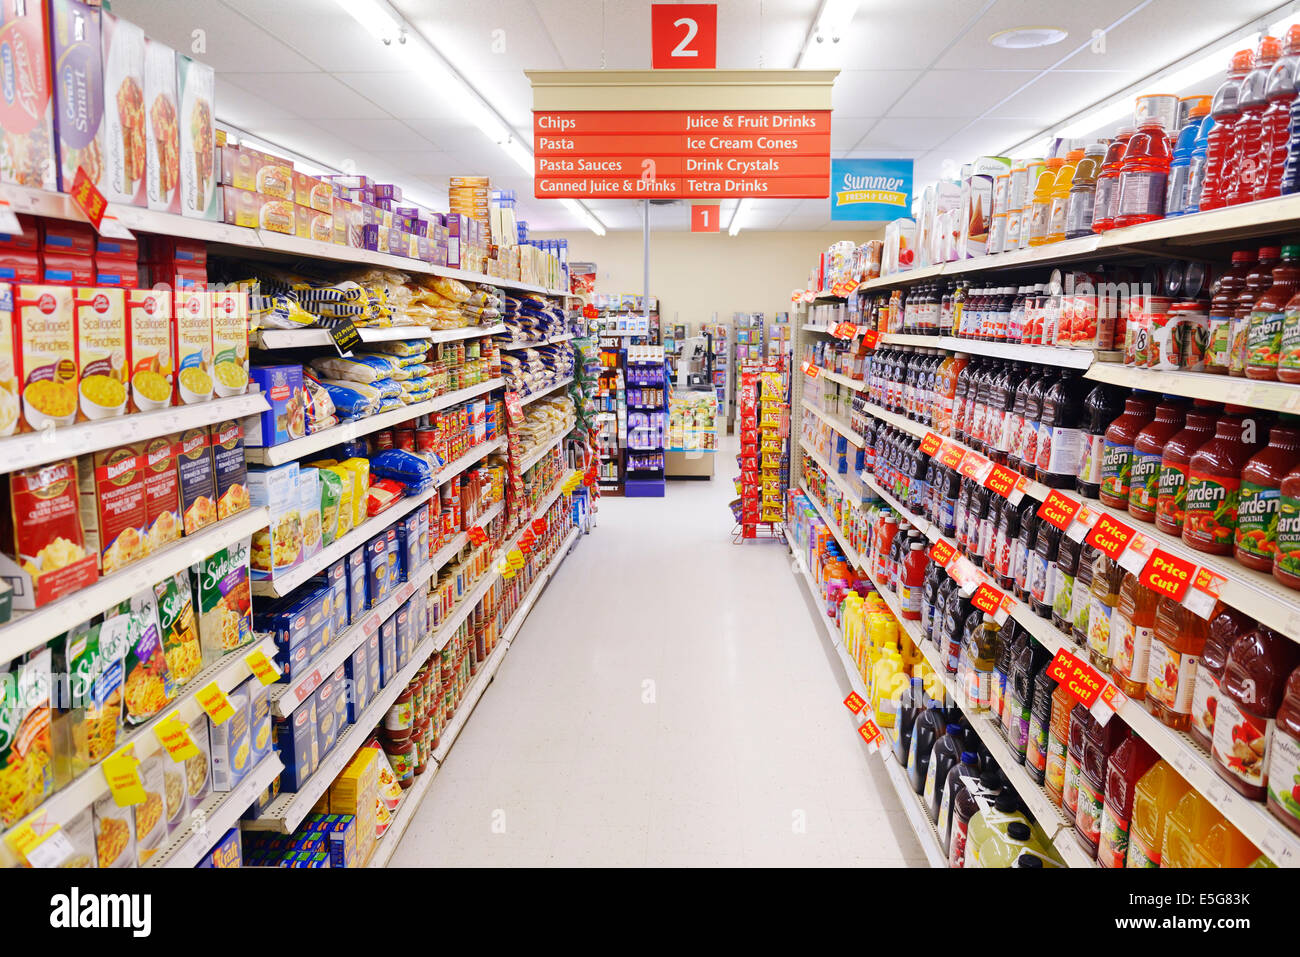 Juices supermarket stock photos juices supermarket stock images supermarket aisle with juices and pasta on the shelves ontario canada stock image malvernweather Gallery